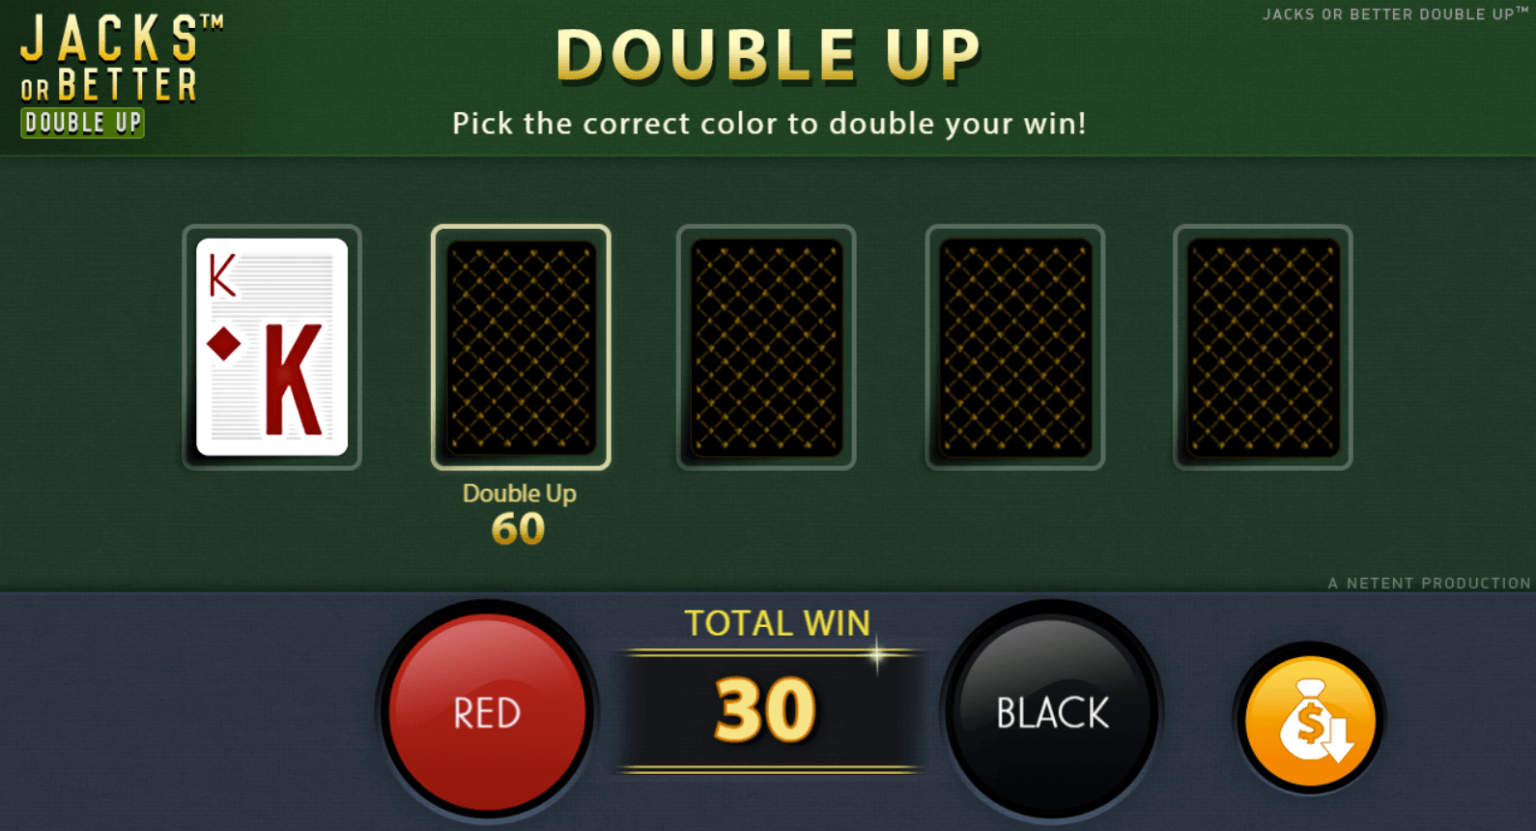 A screenshot of the Jacks or Better casino game. Once you get a winning hand, you can gamble your winnings in a game of red or black